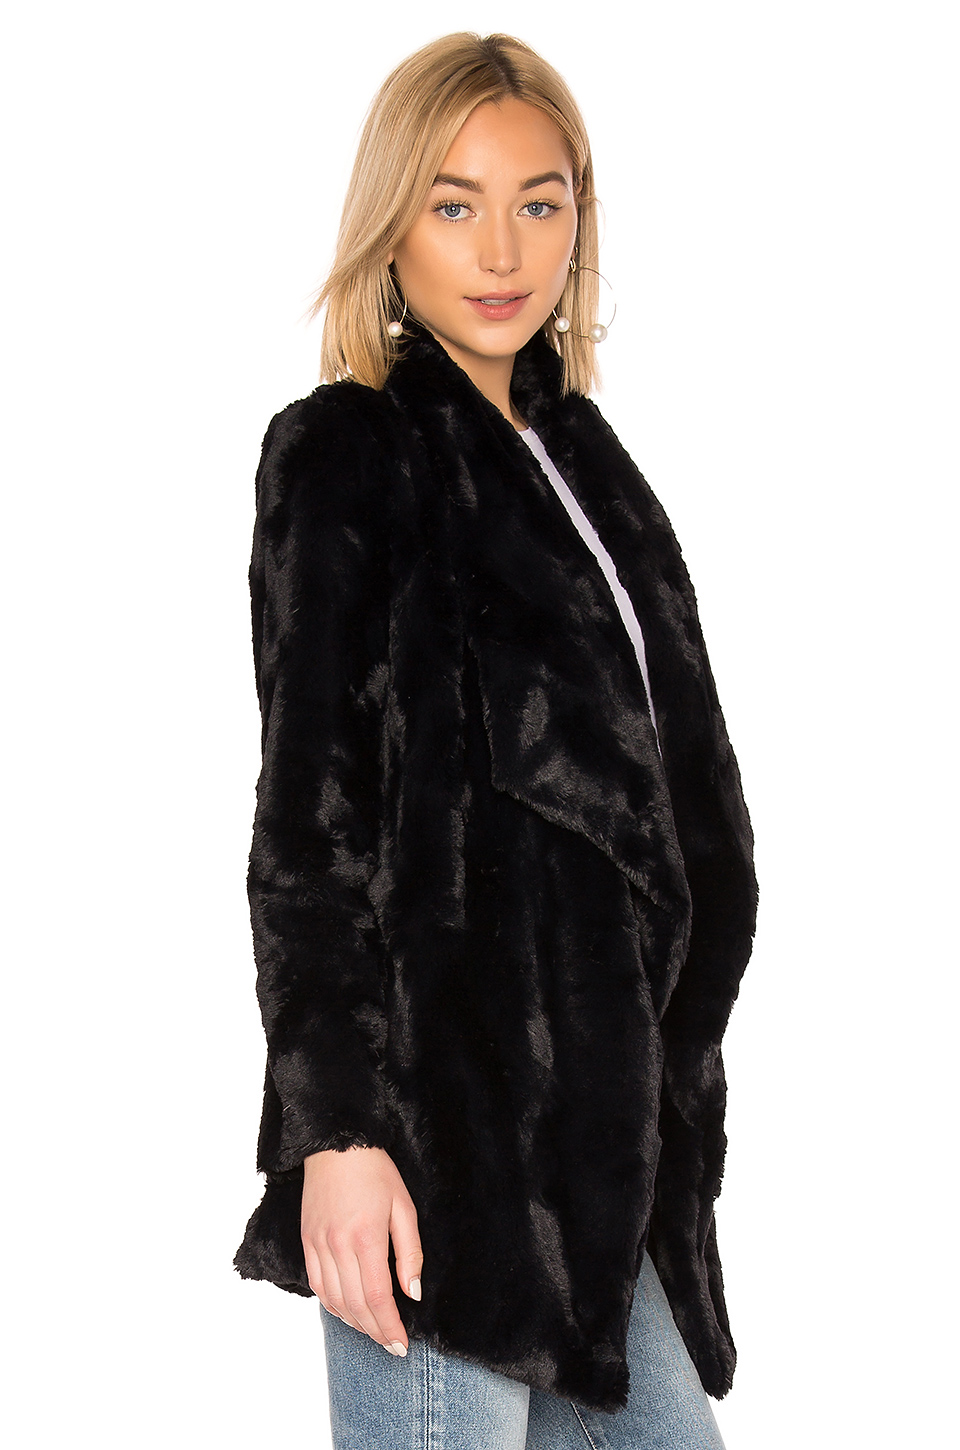 BB Dakota JACK by BB Dakota Warm Thoughts Faux Fur Jacket